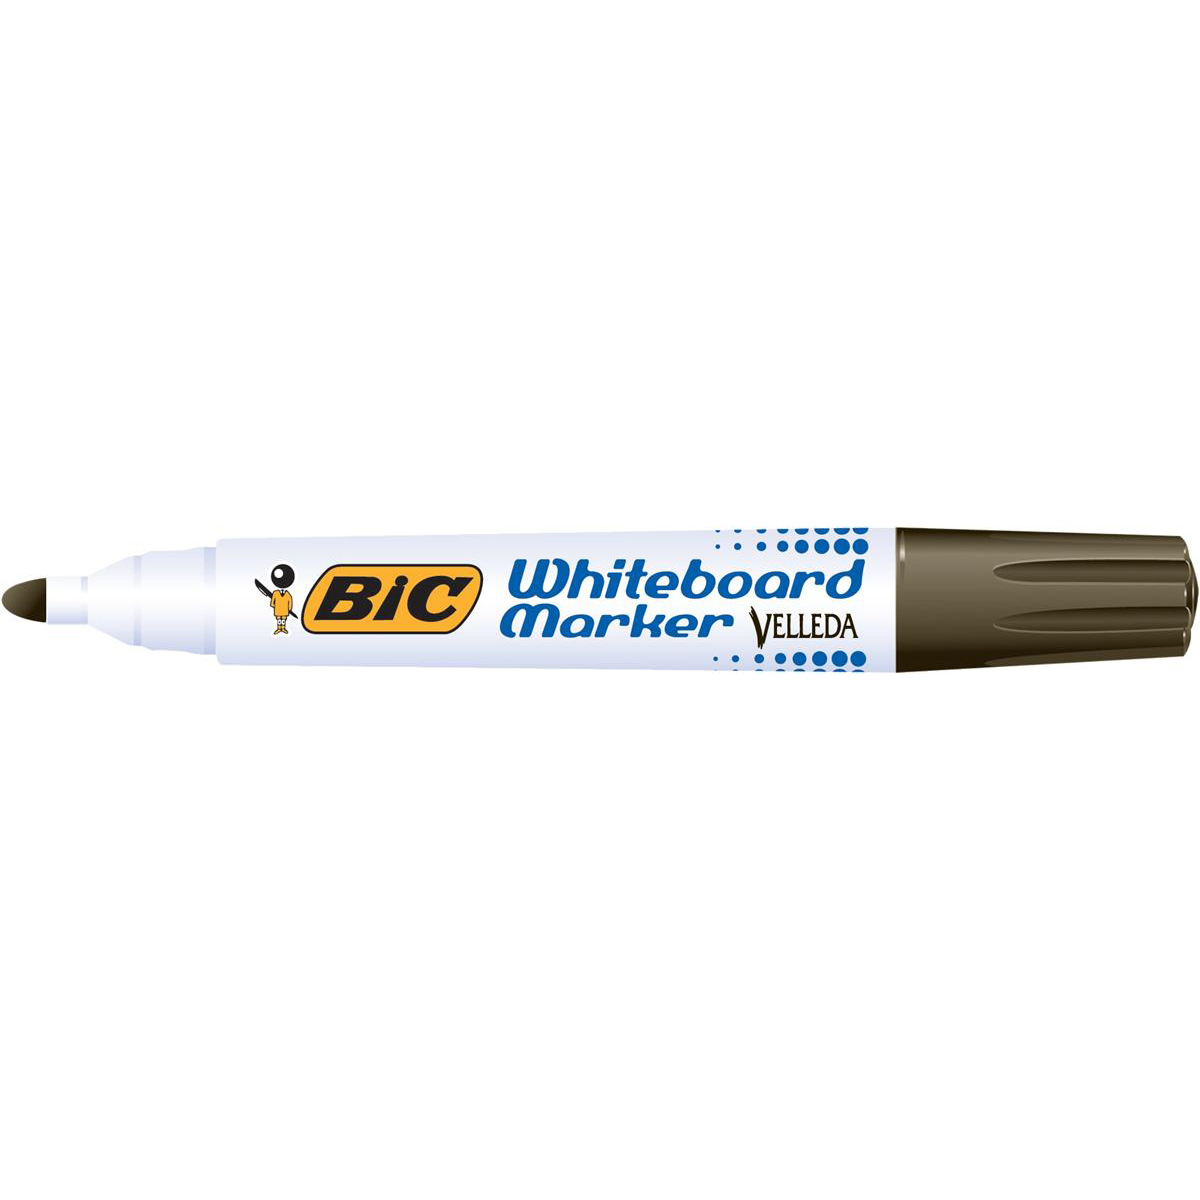 Bic Velleda Marker Whiteboard Dry-wipe 1701 Large Bullet Tip 1.5mm Line Black Ref 942234 [Pack 12]